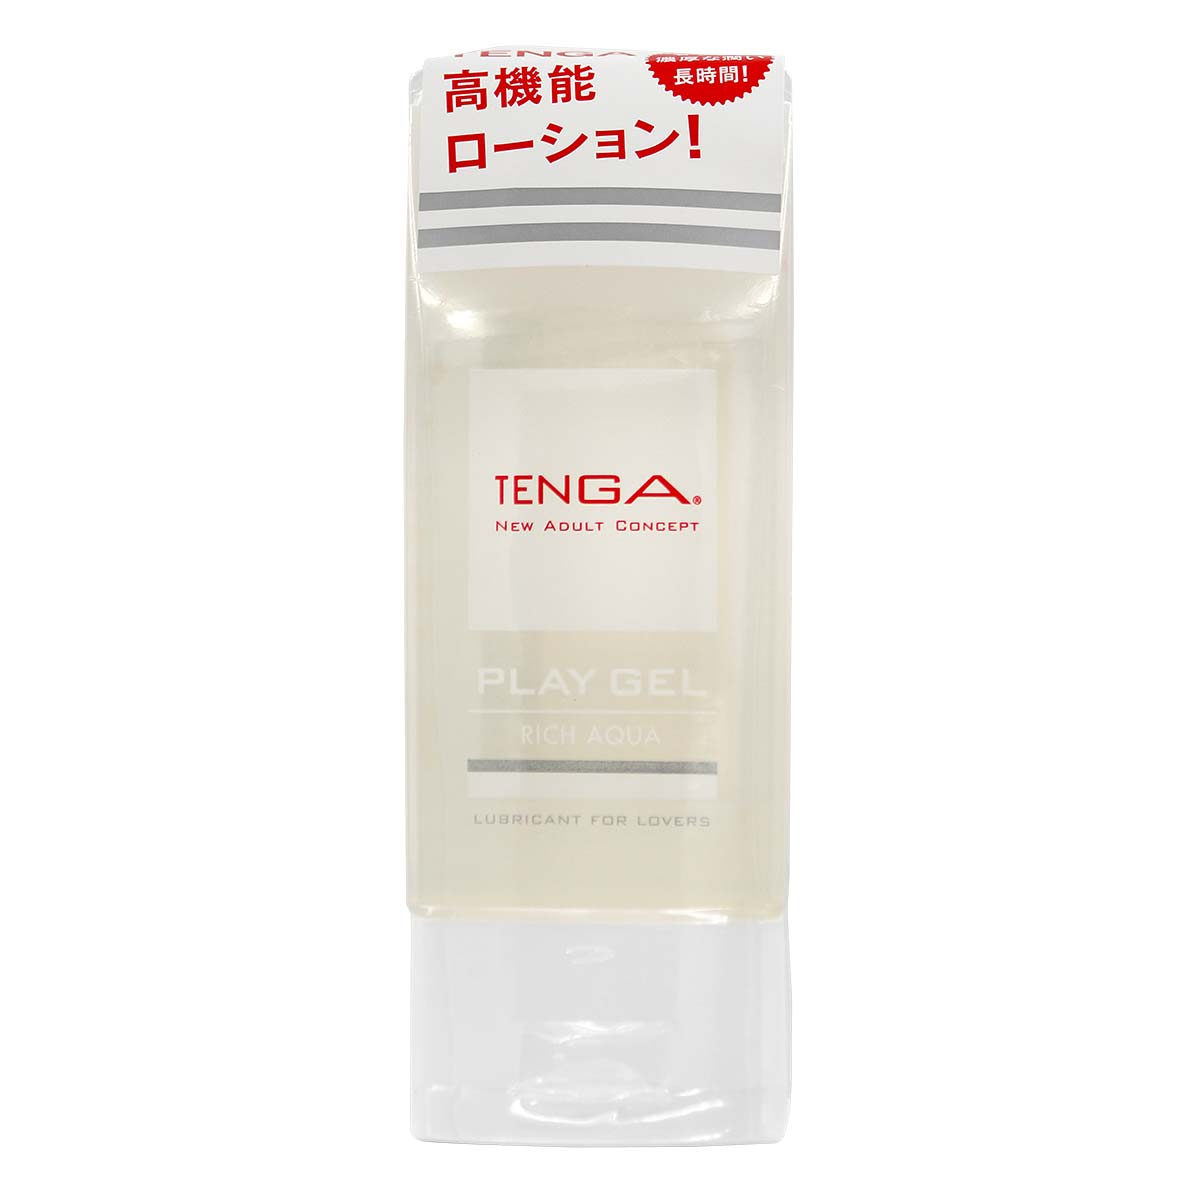 TENGA PLAY GEL RICH AQUA 水性潤滑劑